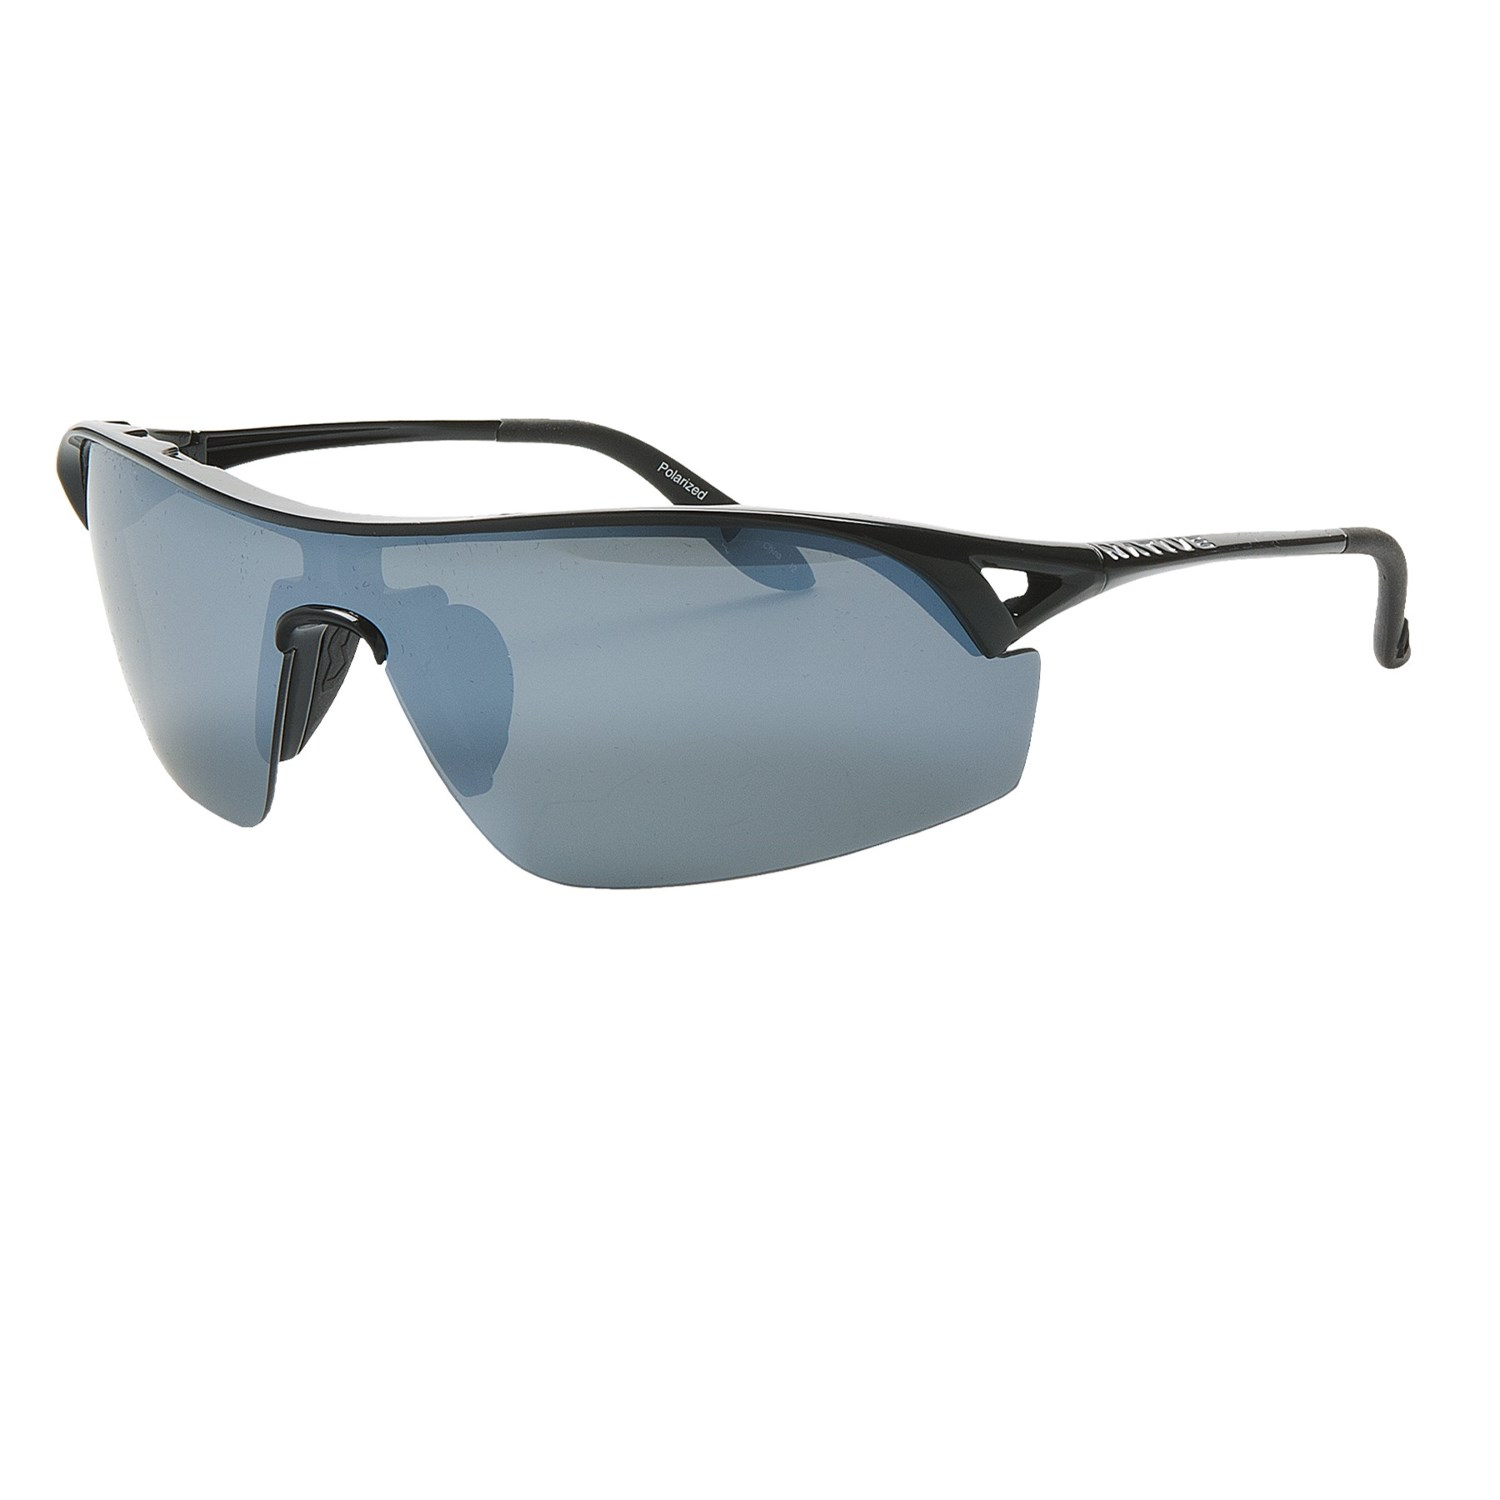 eb49b05a84 Native Eyewear Attack Polarized Sunglasses Reviews